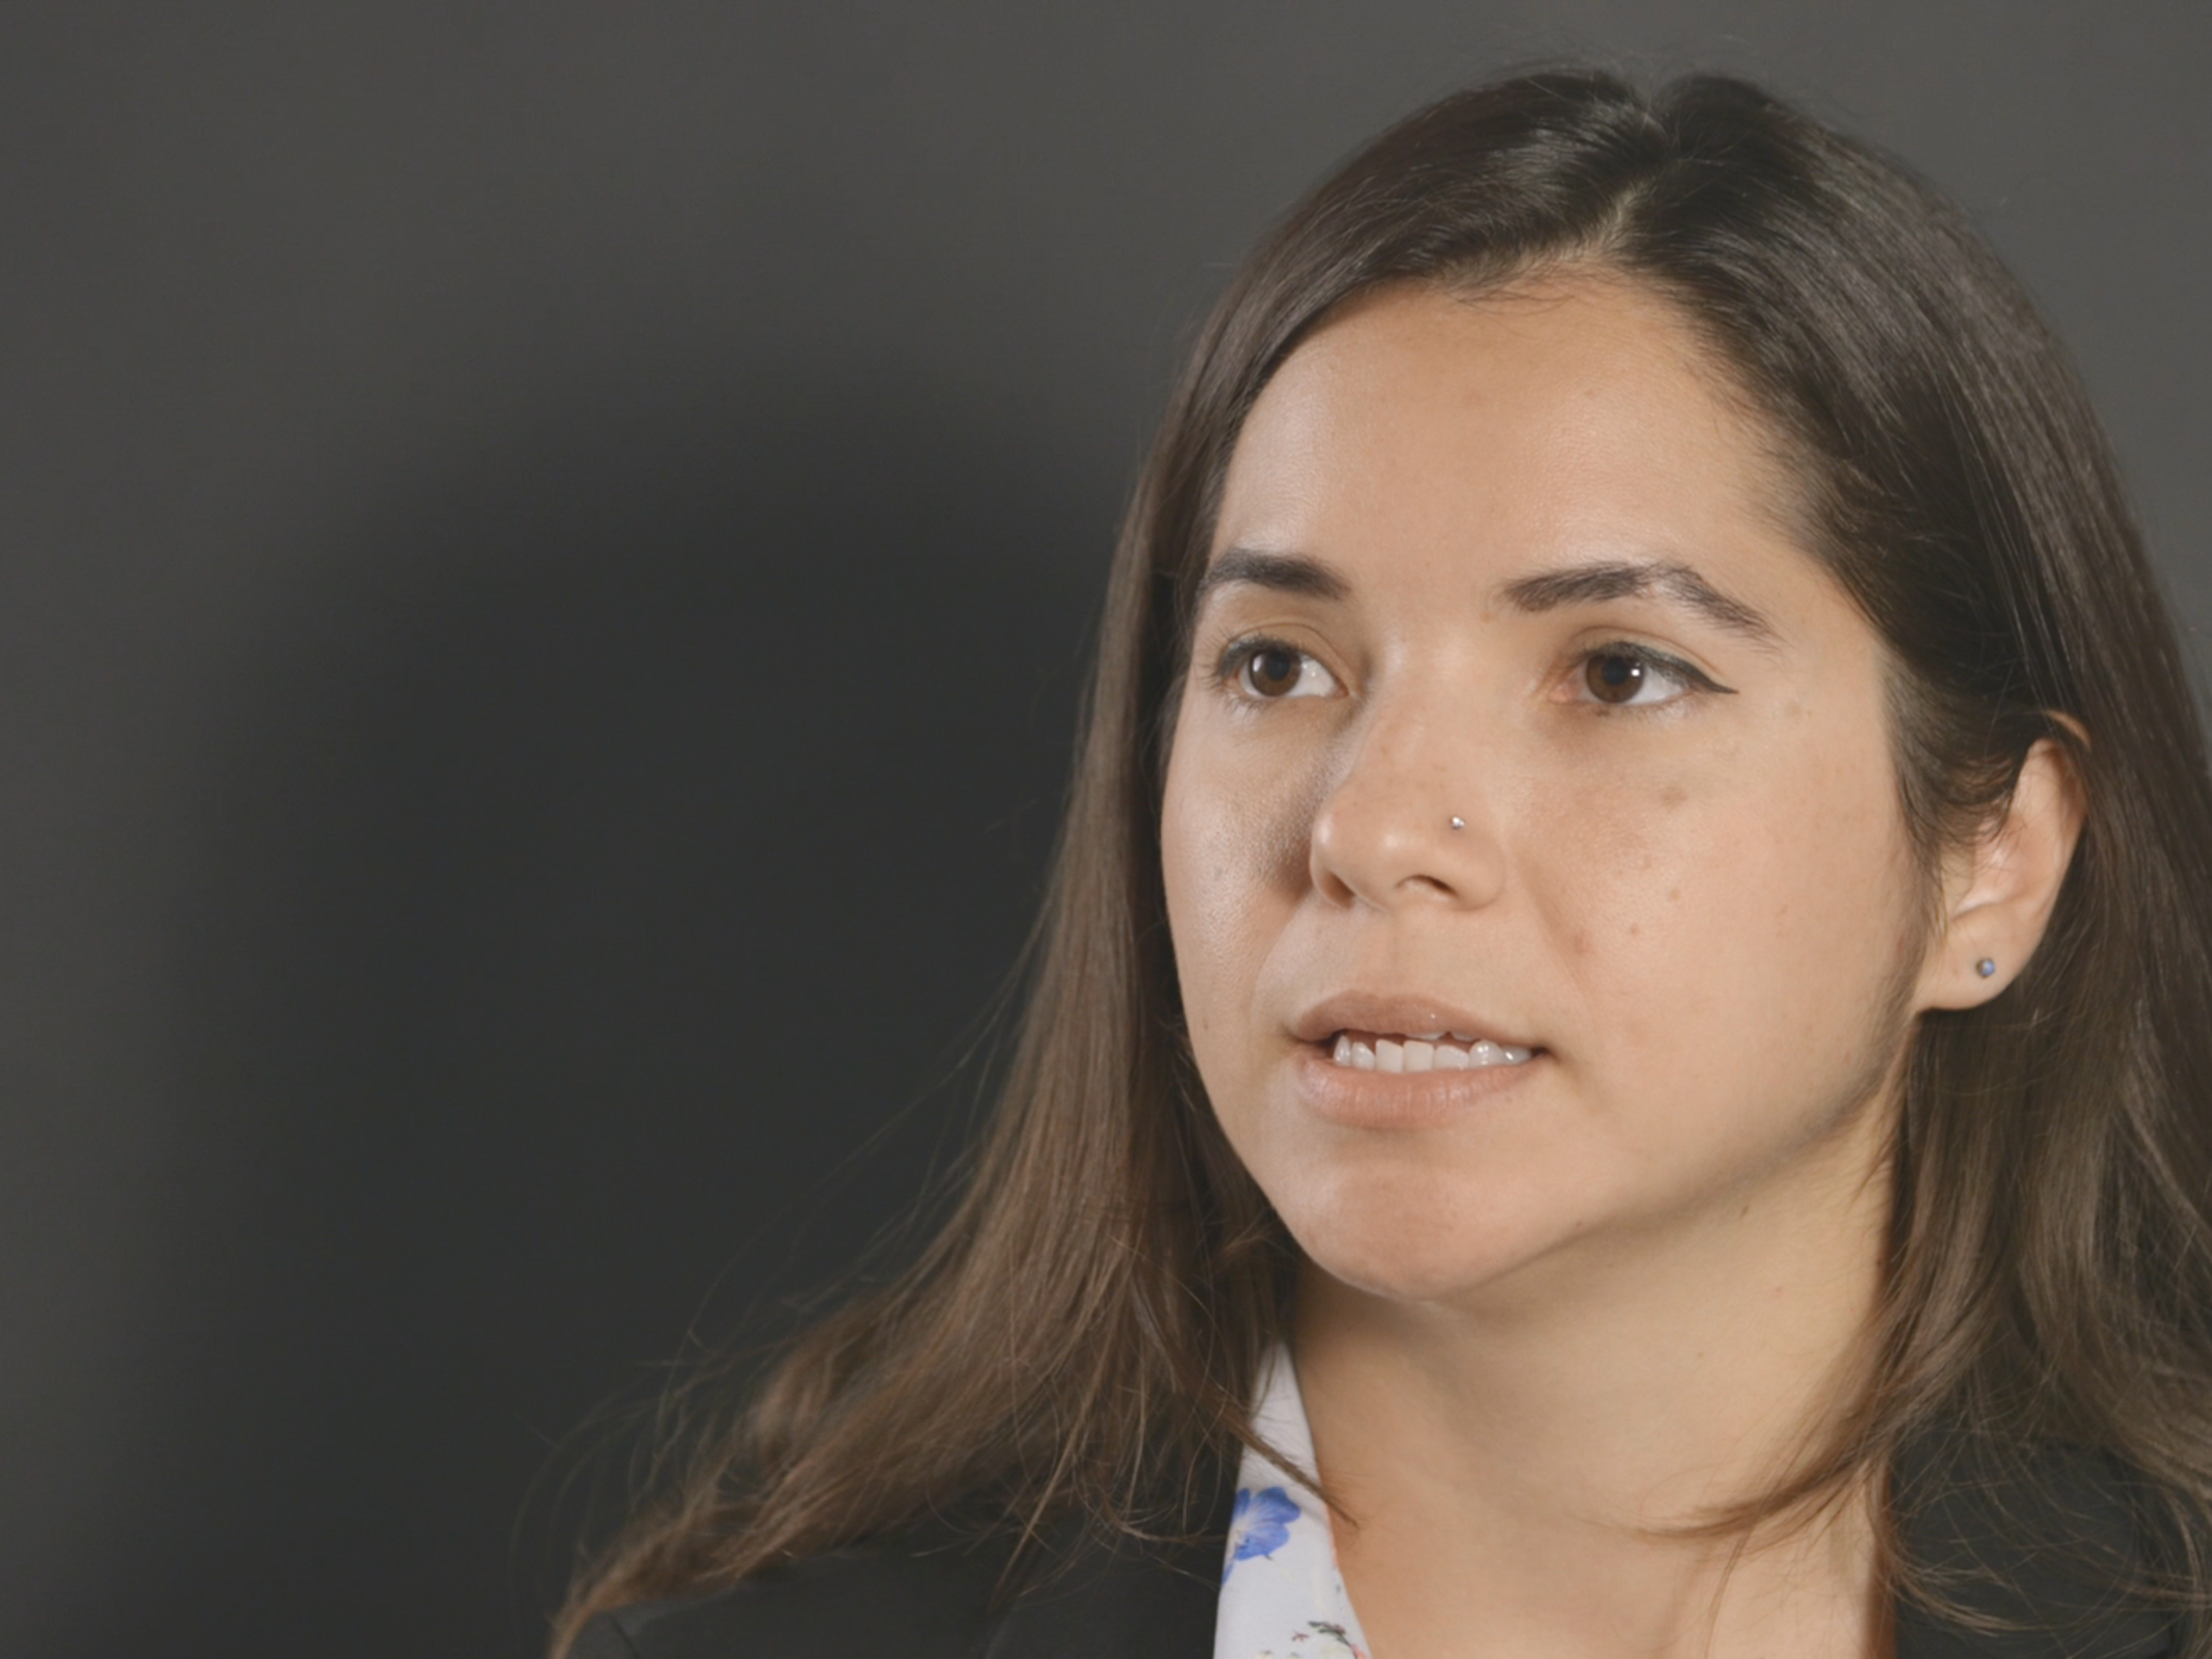 Diana Tafur, supervising attorney for the Refugee and Immigration Center for Education and Legal Services, or RAICES, talks to the Caller-Times about DACA.